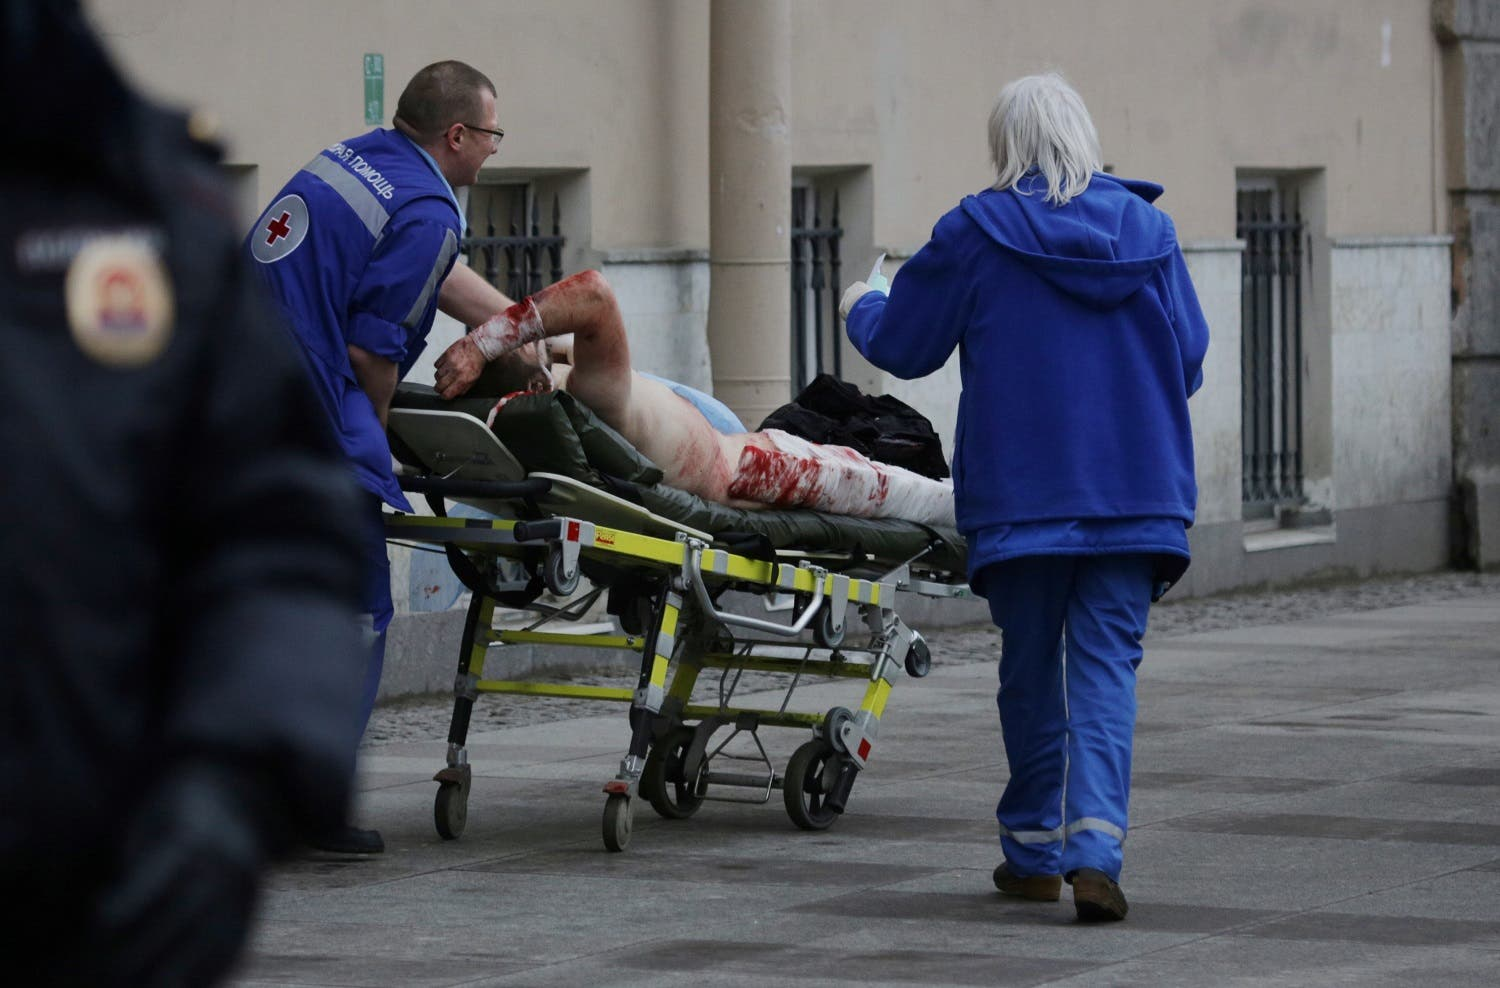 An injured person is helped by emergency services outside Sennaya Ploshchad metro station, following explosions in two train carriages at metro stations in St. Petersburg, Russia April 3, 2017 (Photo: Reuters/Anton Vaganov)